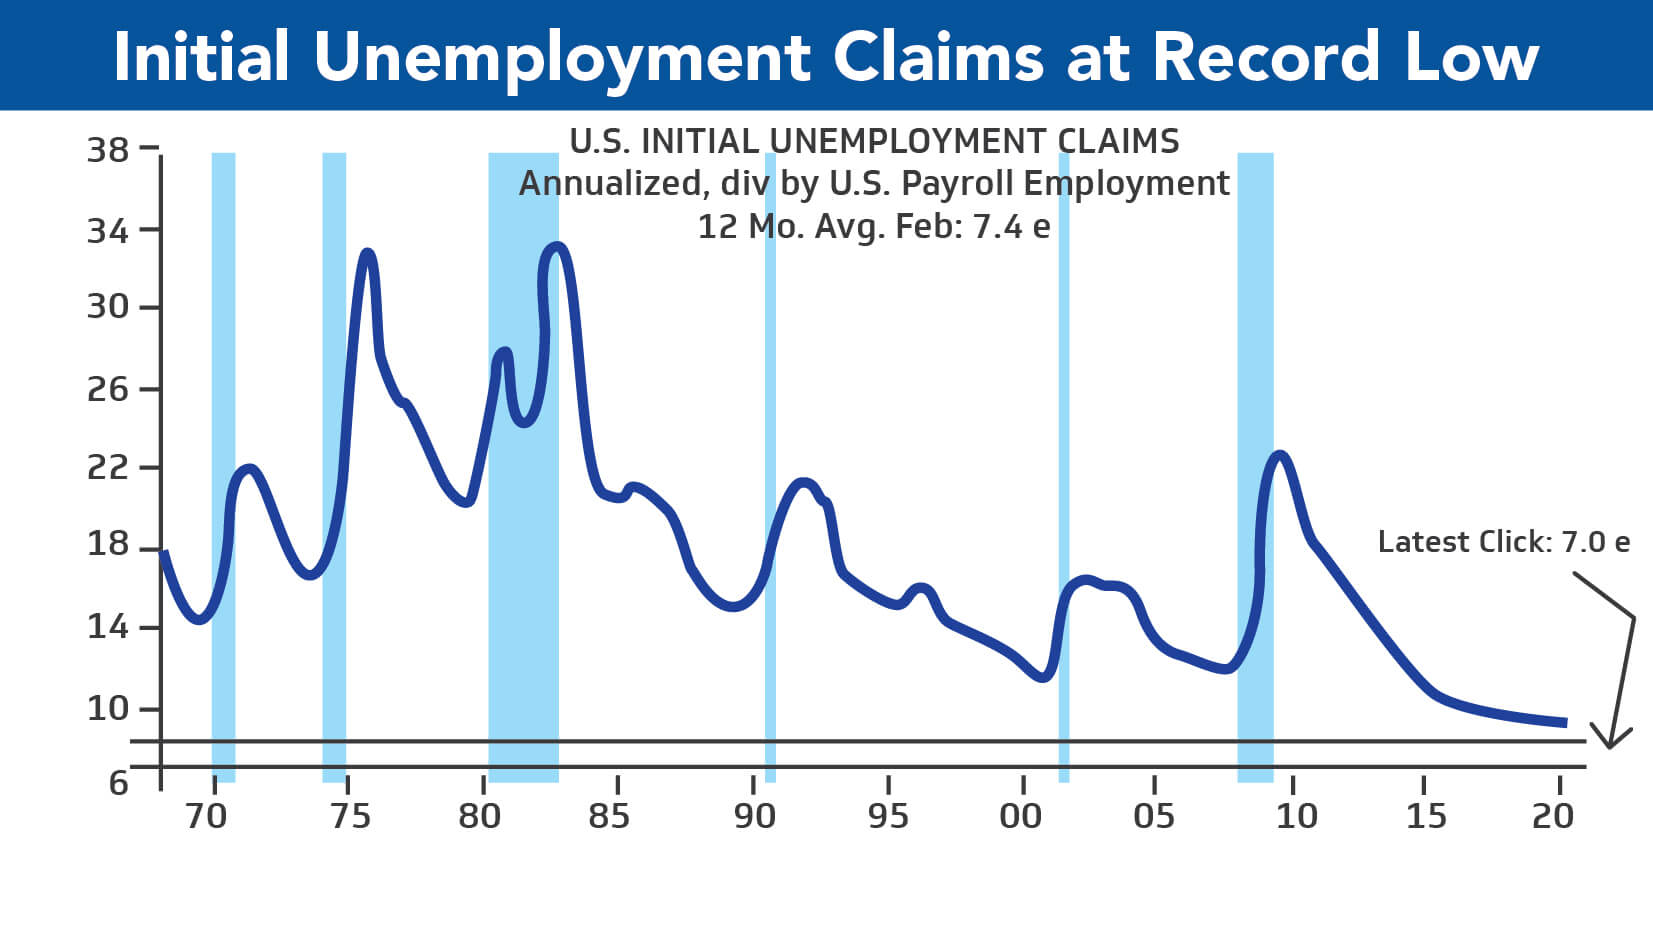 US Initial Unemployment Claims